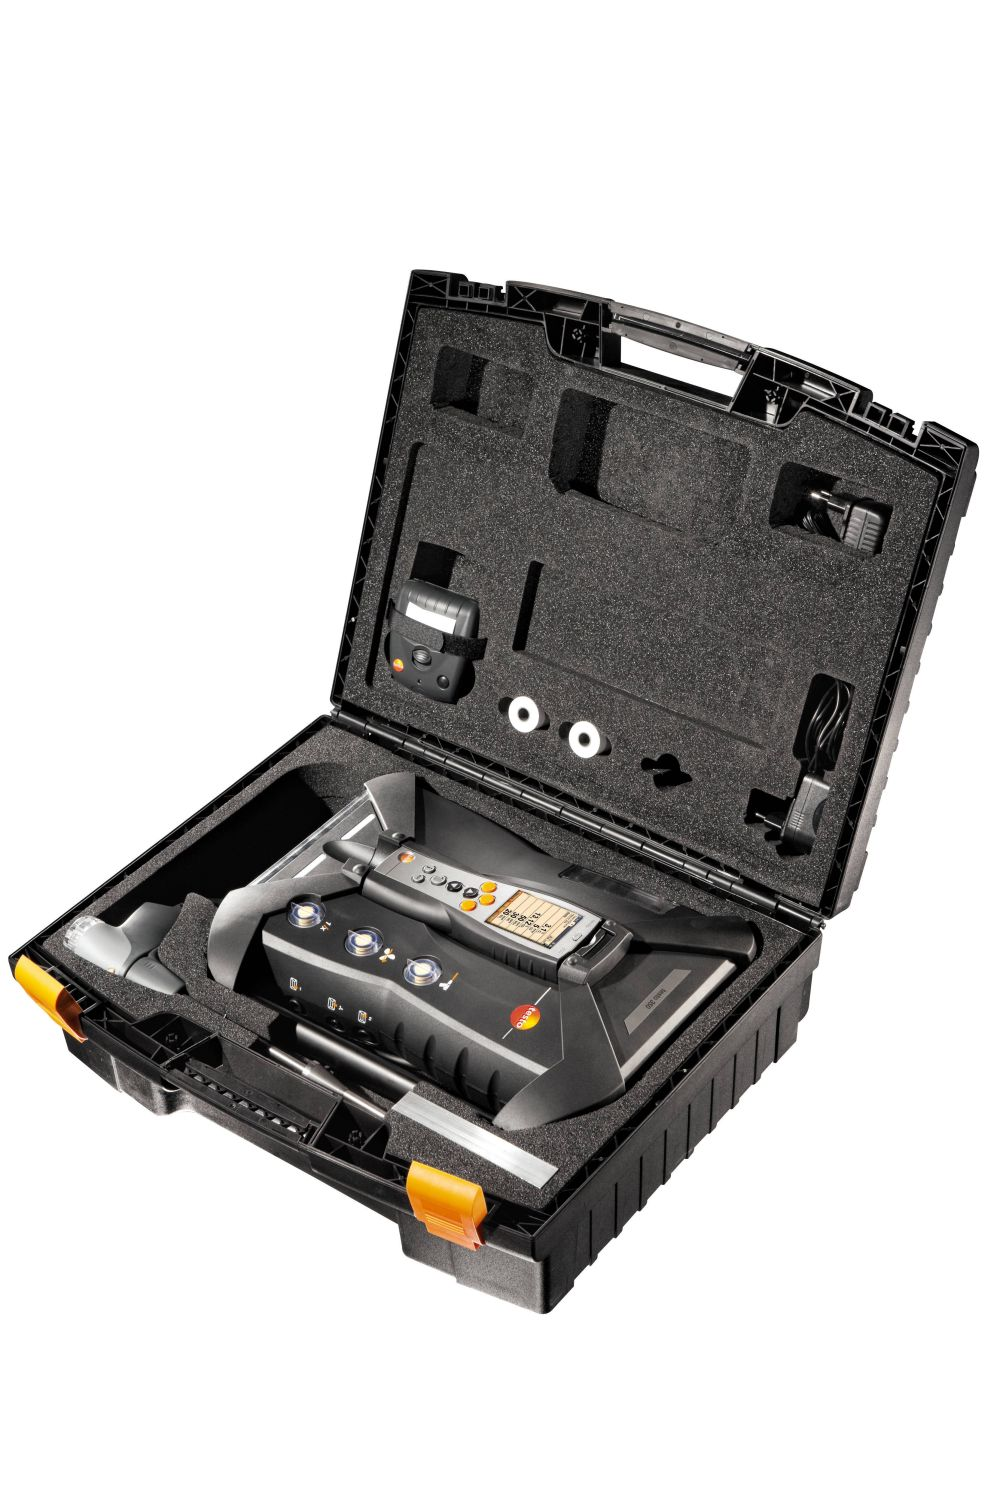 testo 350 emissie analyzer